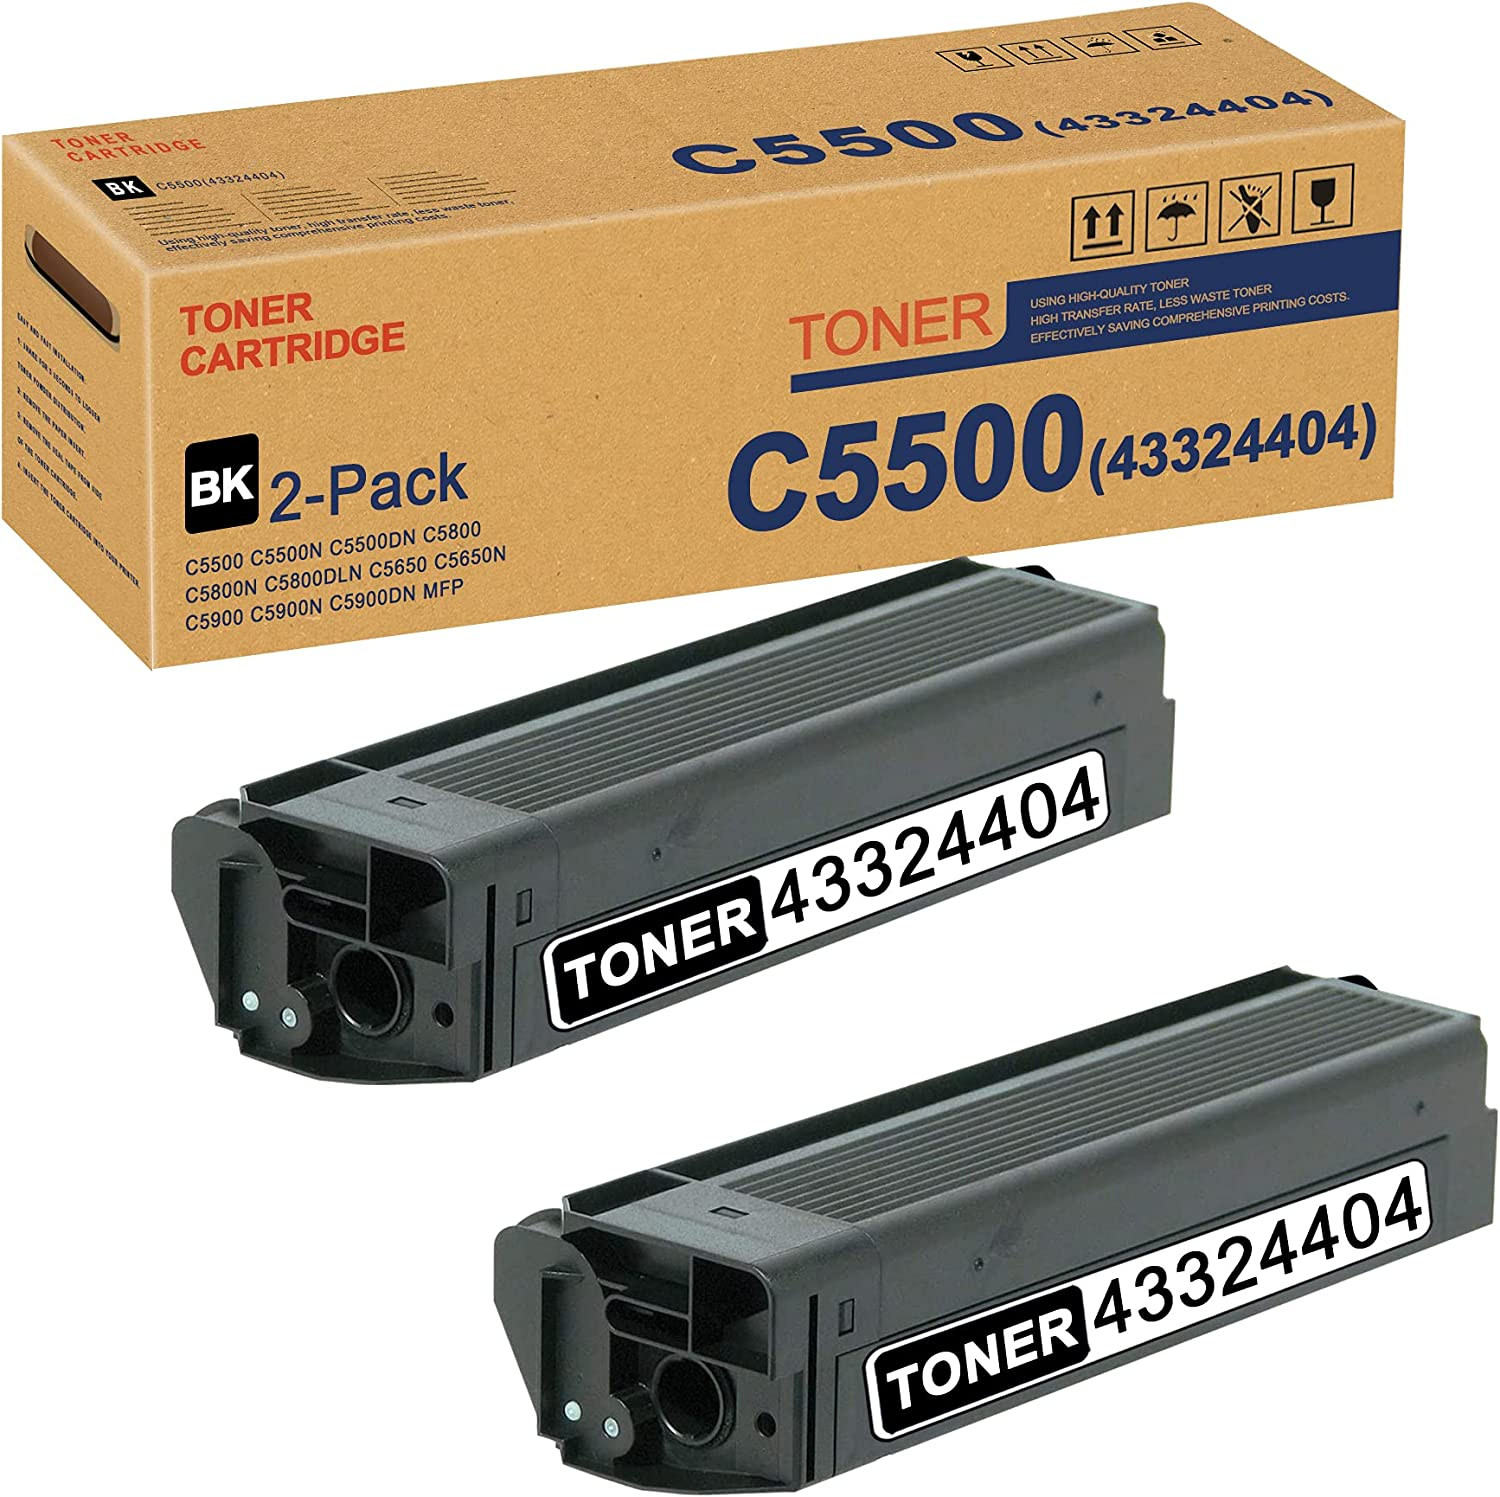 C5500 43324404 Toner Cartridge Black Max 69% OFF OK Pack 2 Replacement for Outstanding